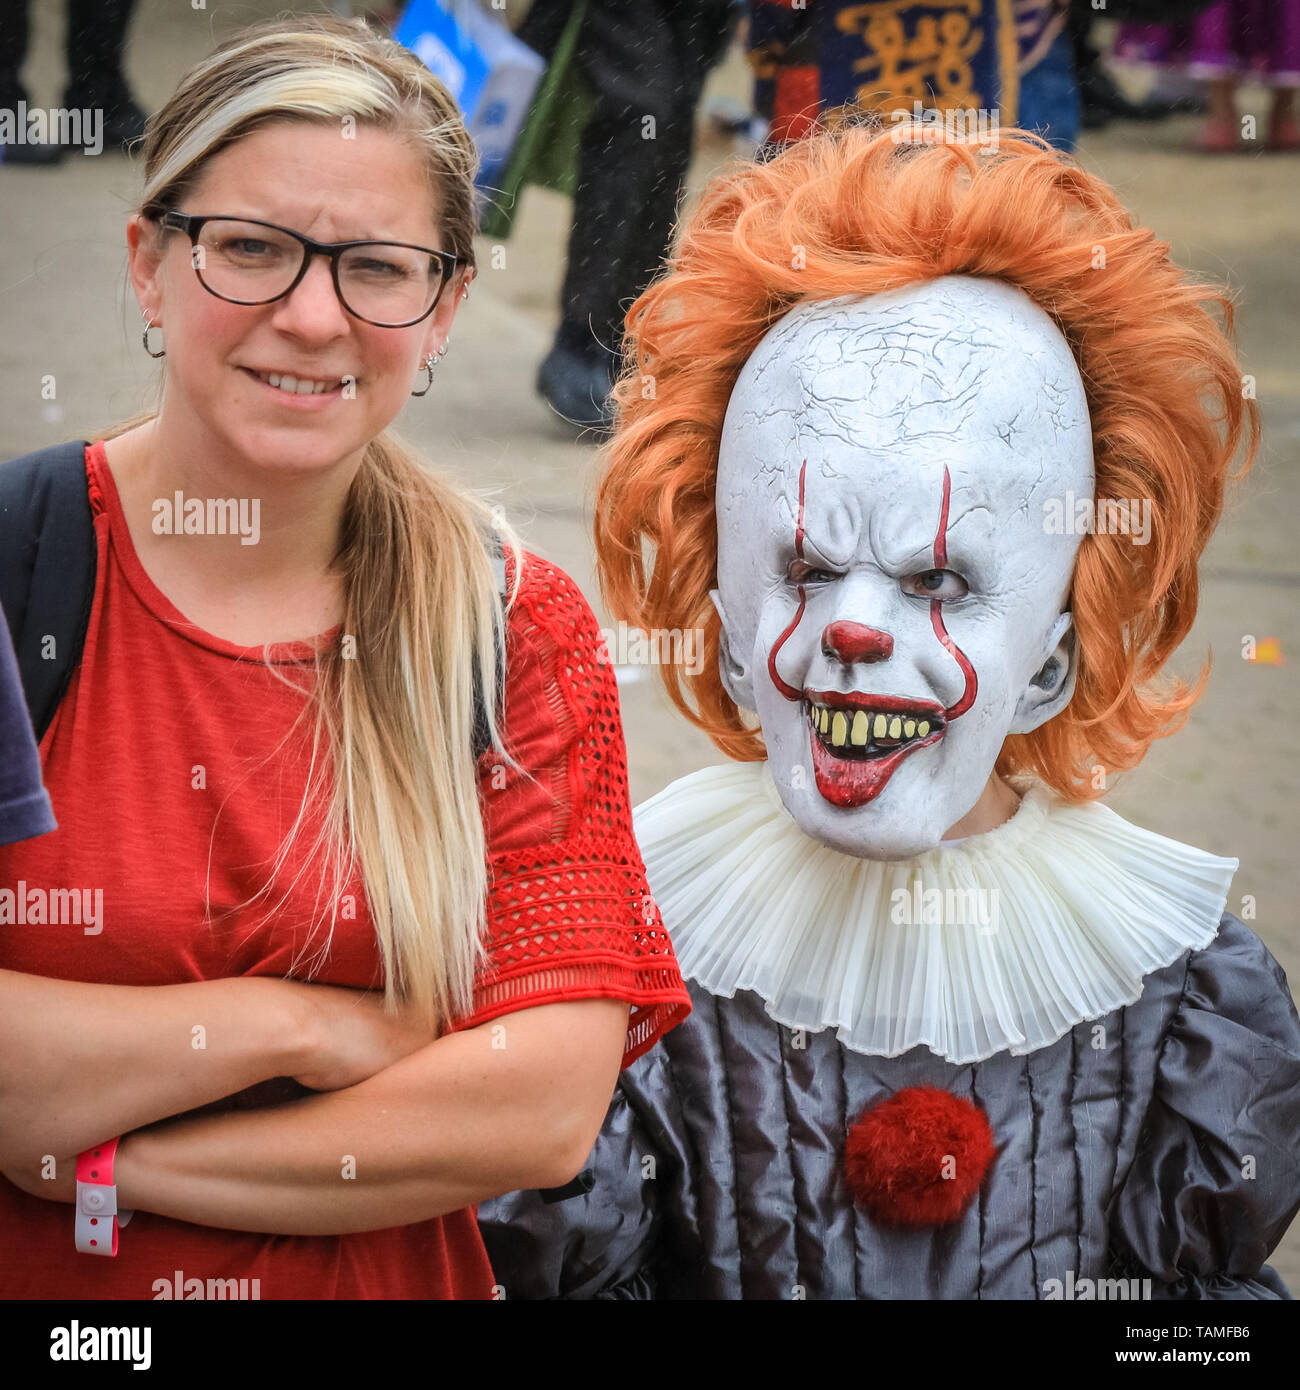 London, UK. 26th May, 2019. A mum looks bemused that her young daughter has decided to come as horror character 'Pennywise' from 'IT' MCM Comicon's third and final day once again sees thousands of cosplayers and fans of comics, games and sci fi and fantasy turn up in fantastic costumes and outfits at ExCel London to celebrate their favourite characters. Credit: Imageplotter/Alamy Live News - Stock Image